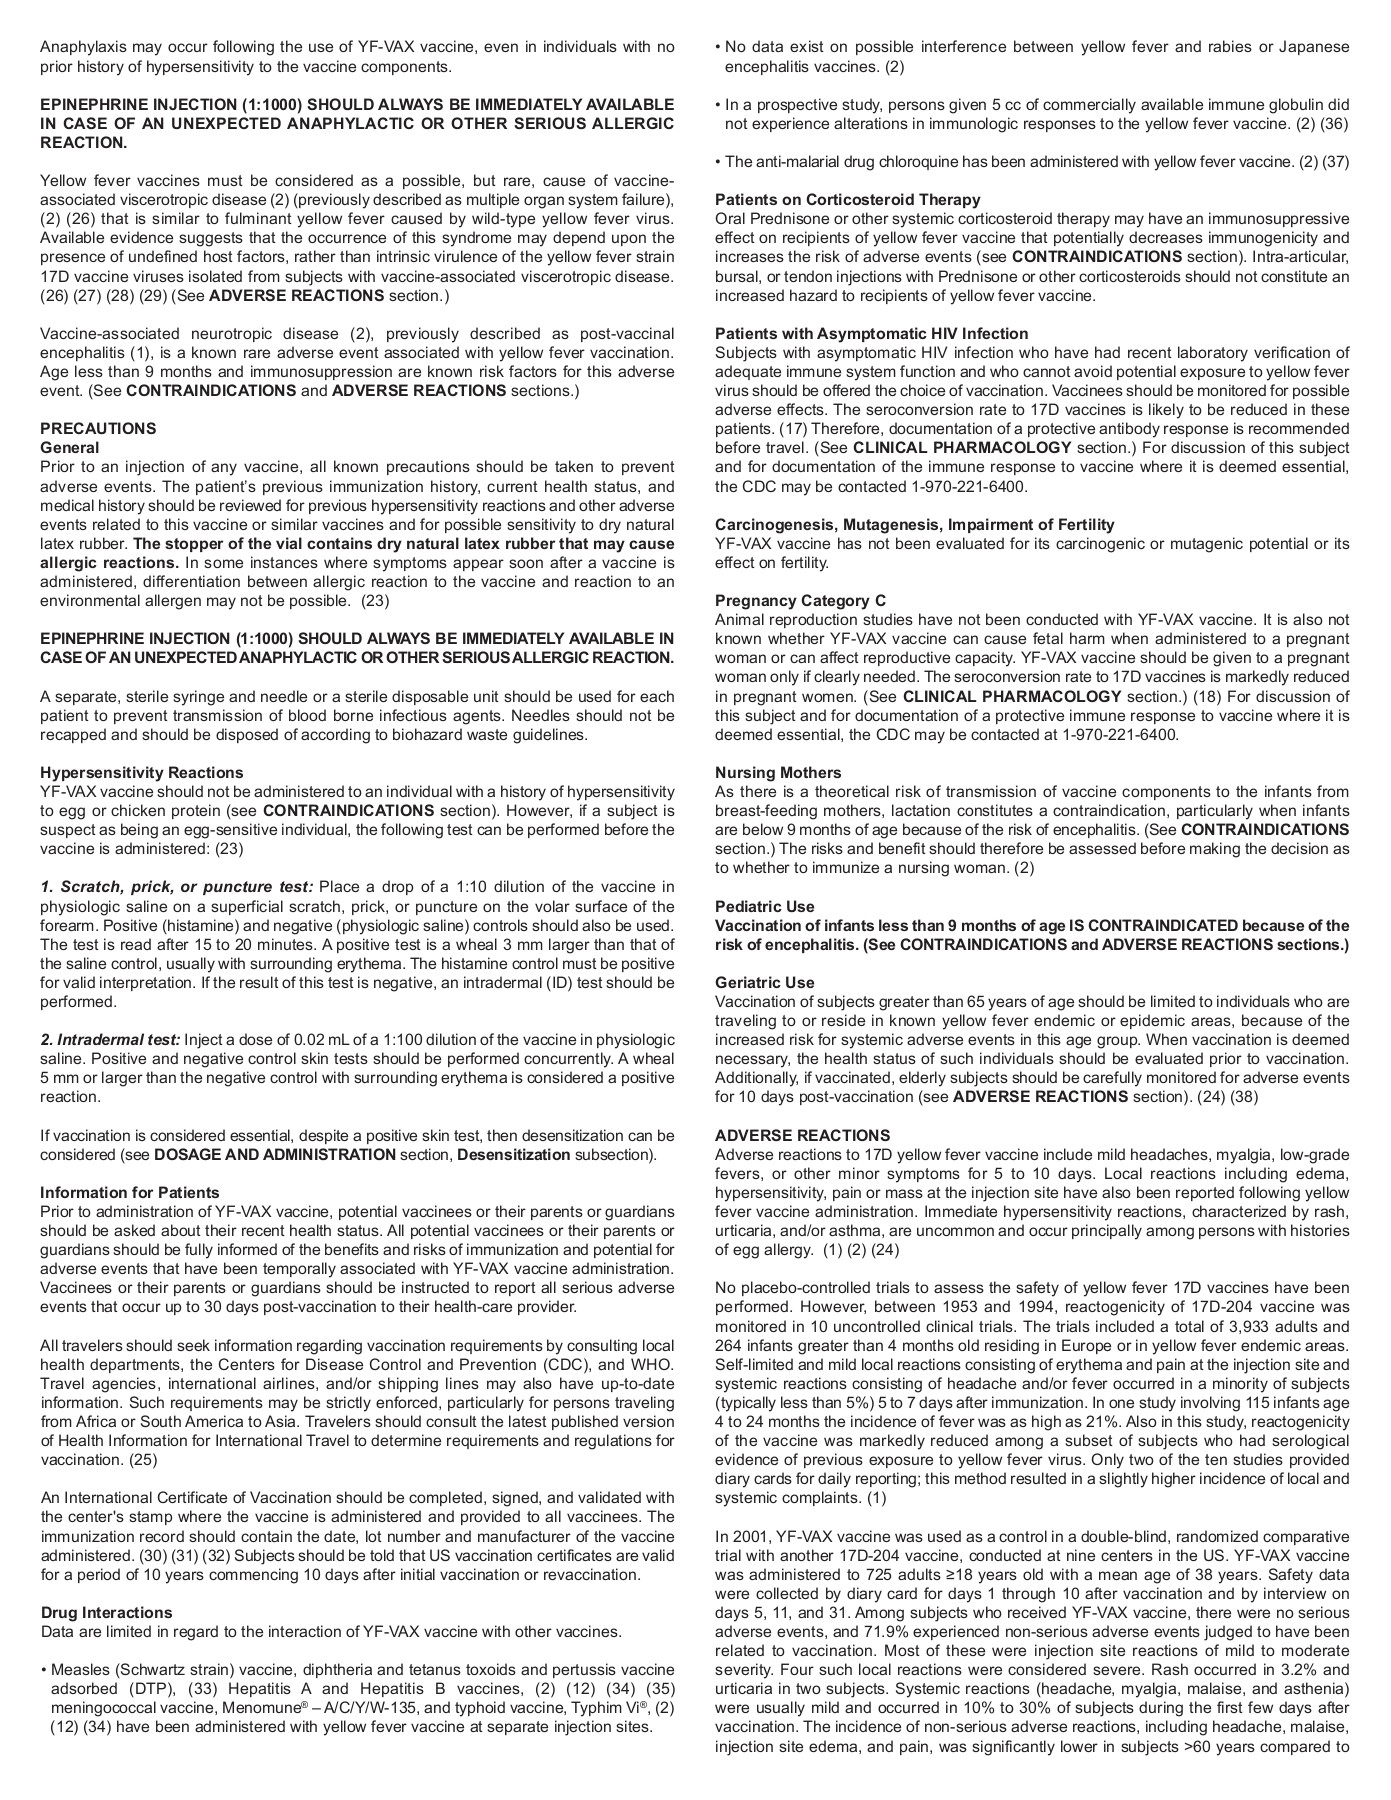 Yellow Fever Vaccine YF-VAX Pages 1 - 4 - Text Version | AnyFlip